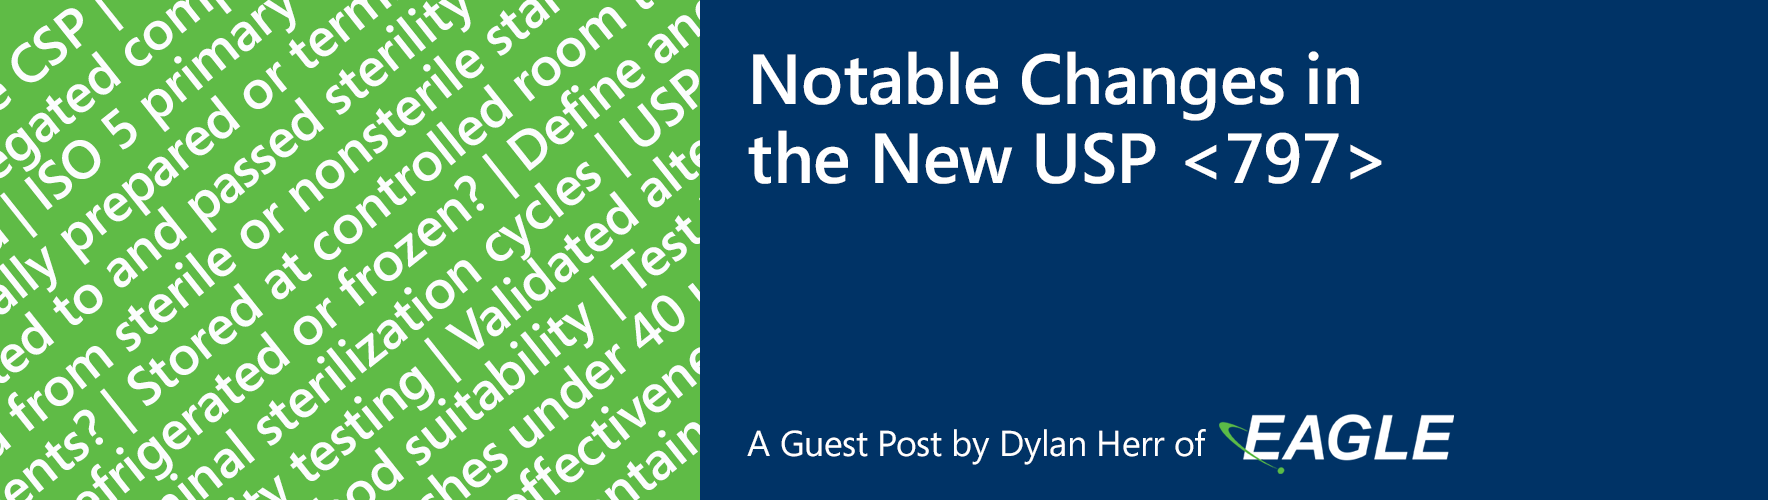 THE PCCA BLOG | Notable Changes in the New USP <797>